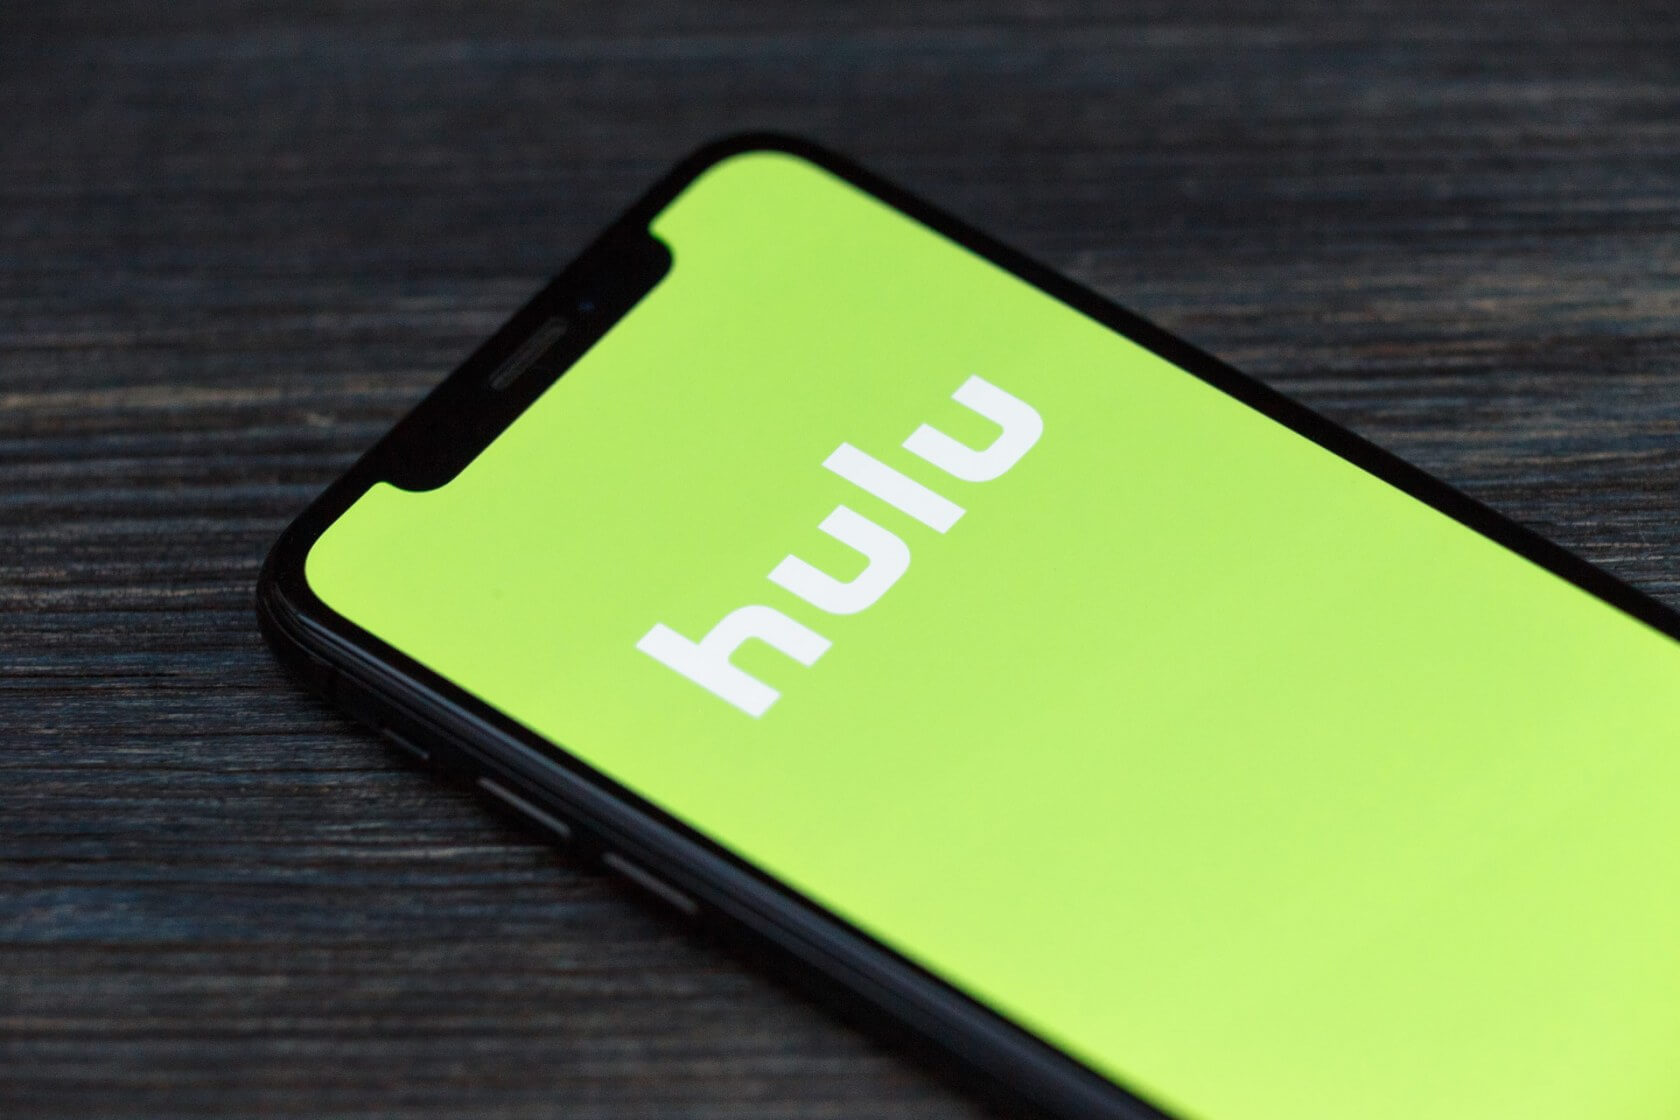 Hulu incentivizes binge viewing sessions with ad-free